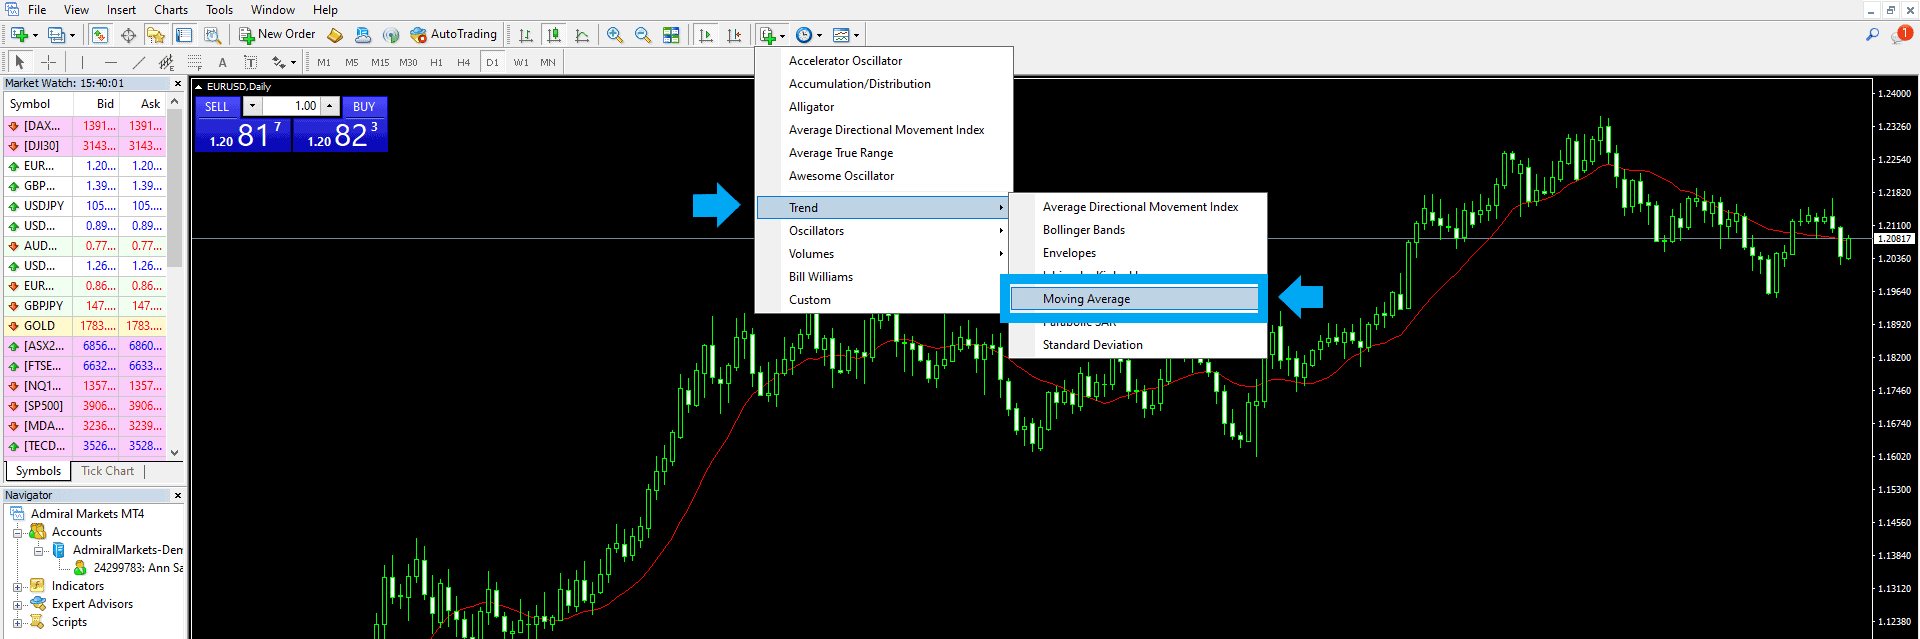 Adding moving average to mt4 chart from indicator icon dropdown menu